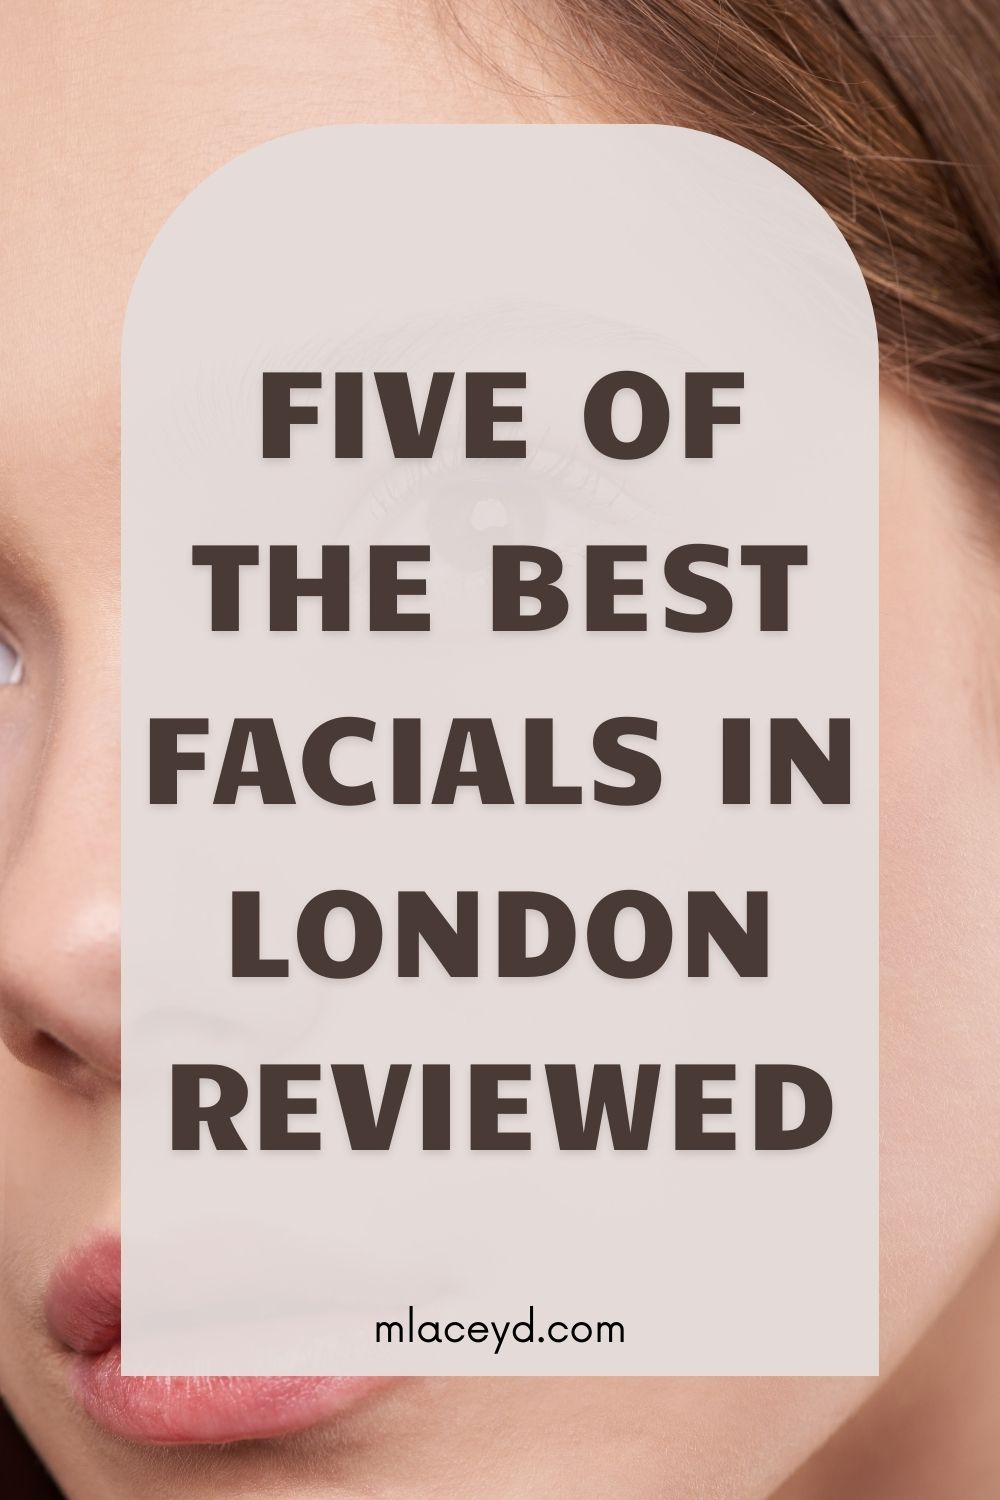 the best facials in london reviewed